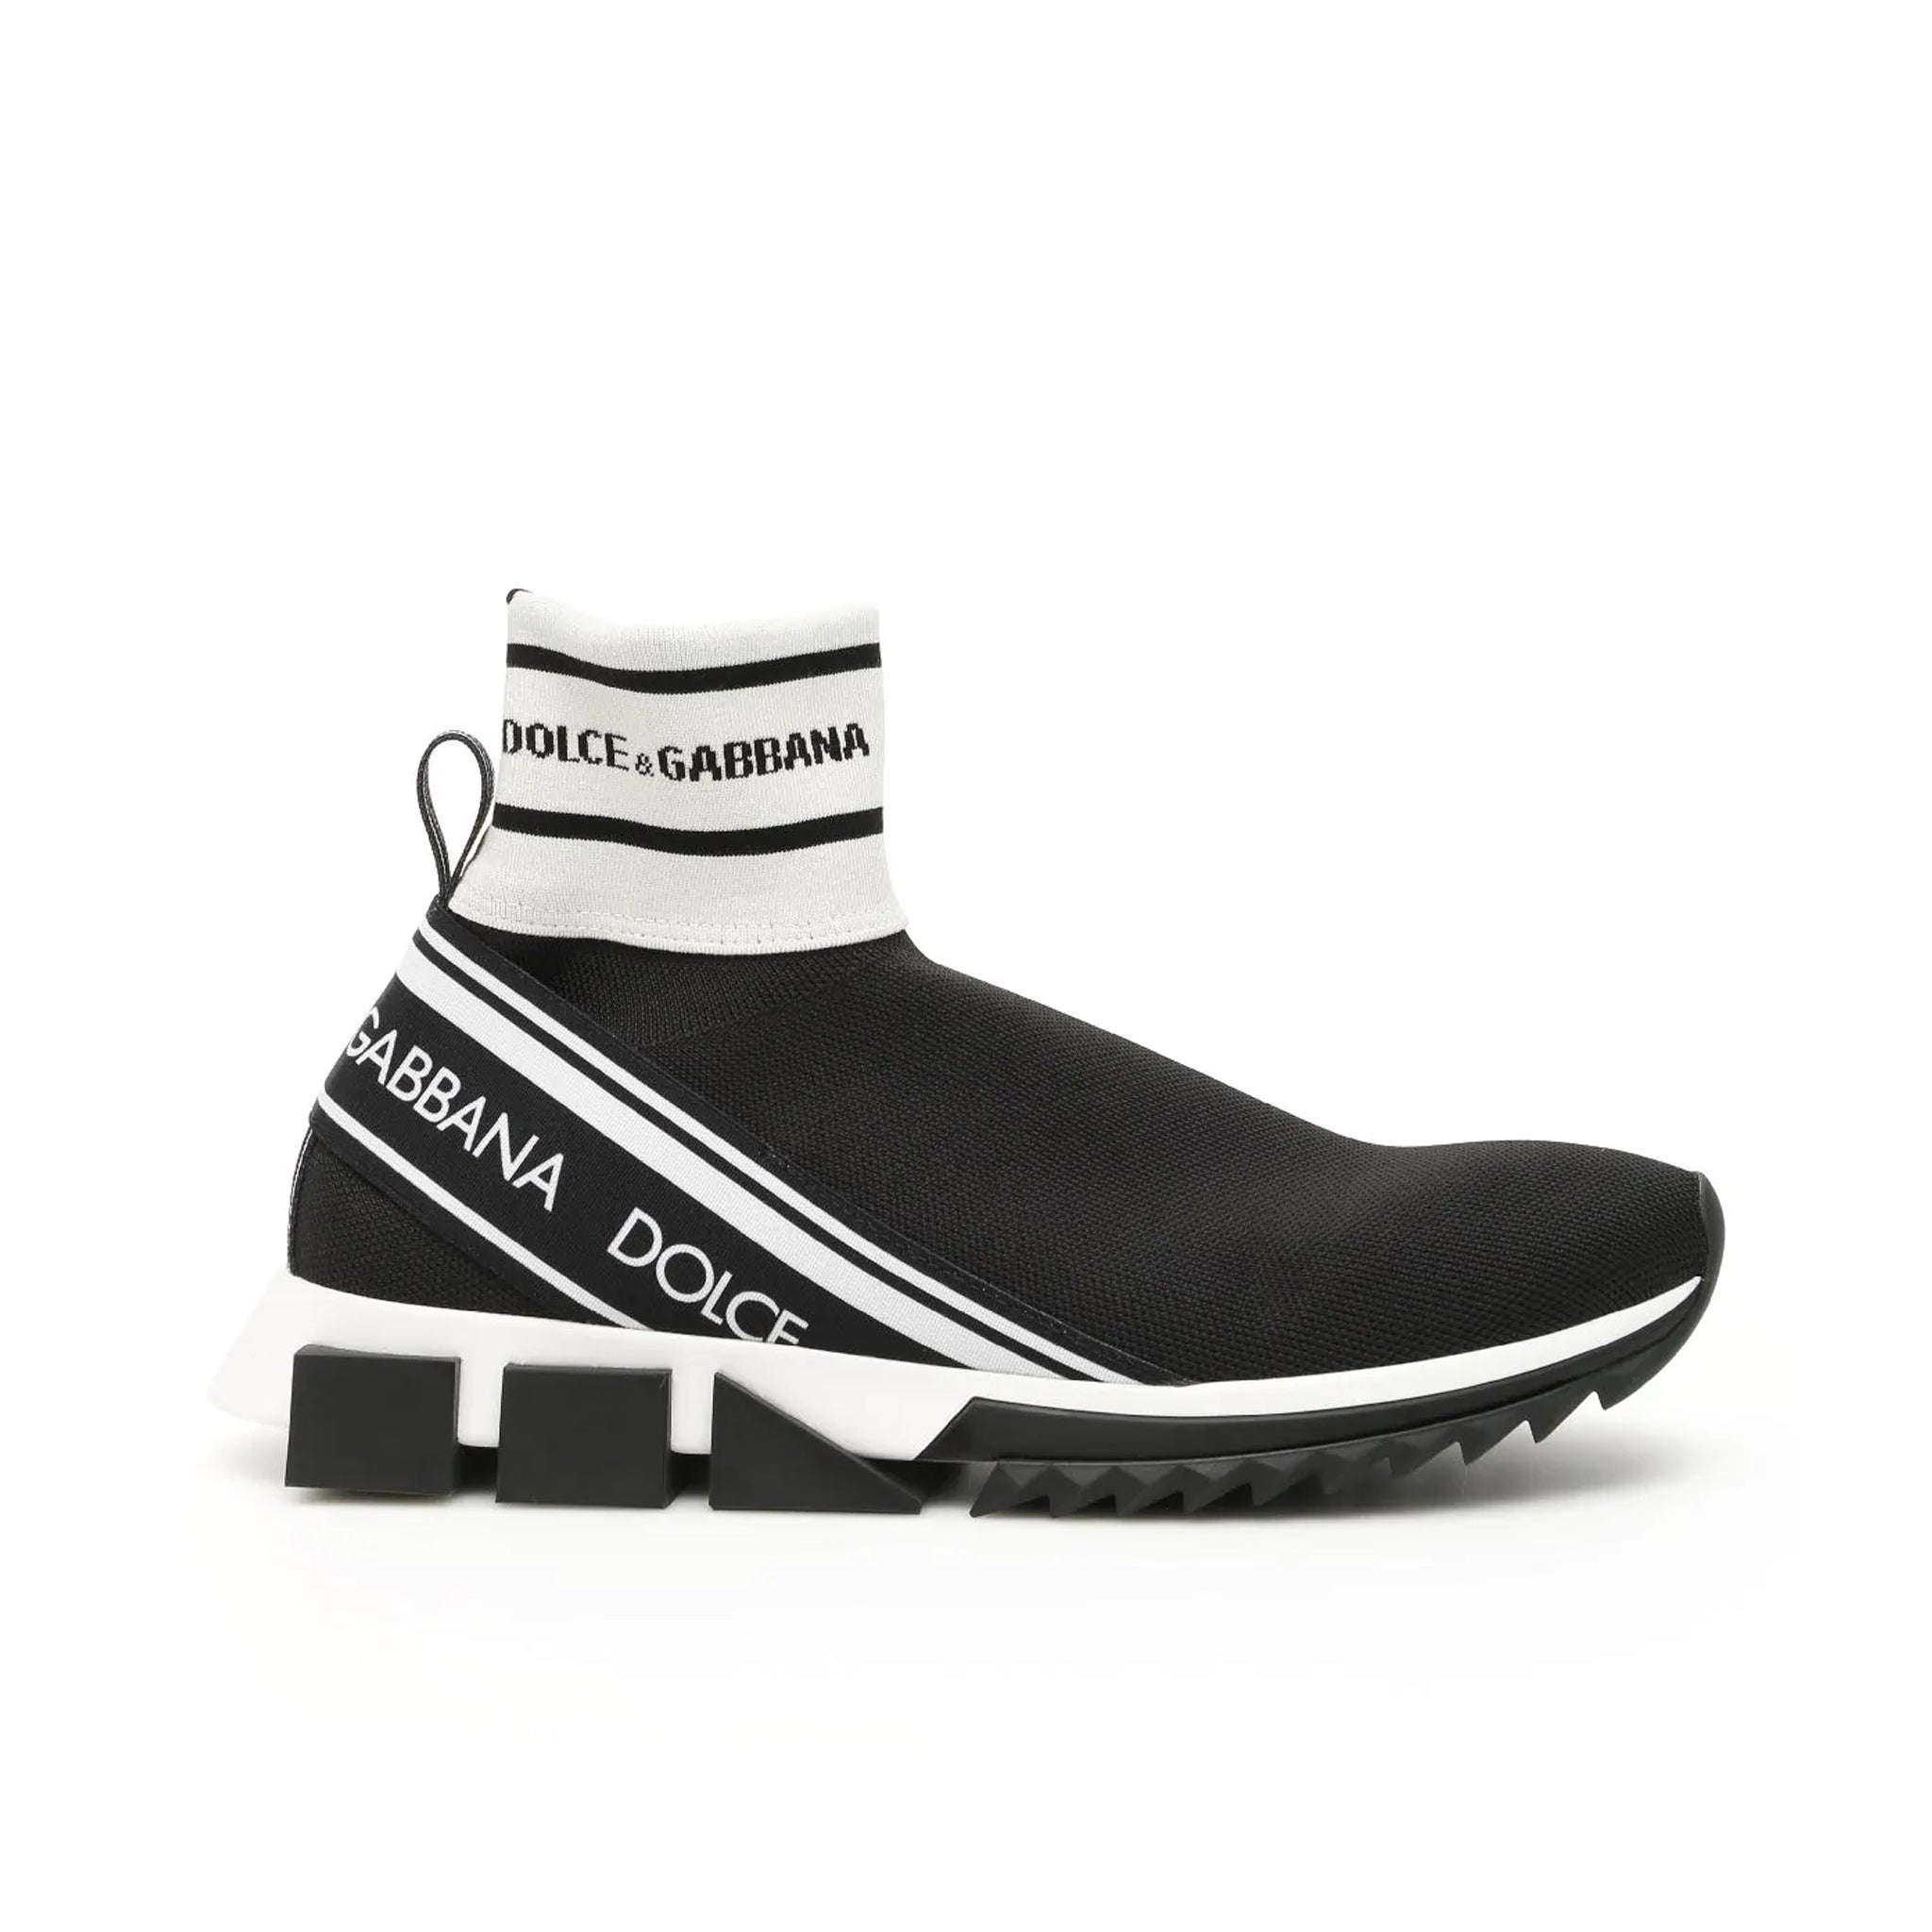 Dolce & Gabbana High Top Sorrento Sneakers